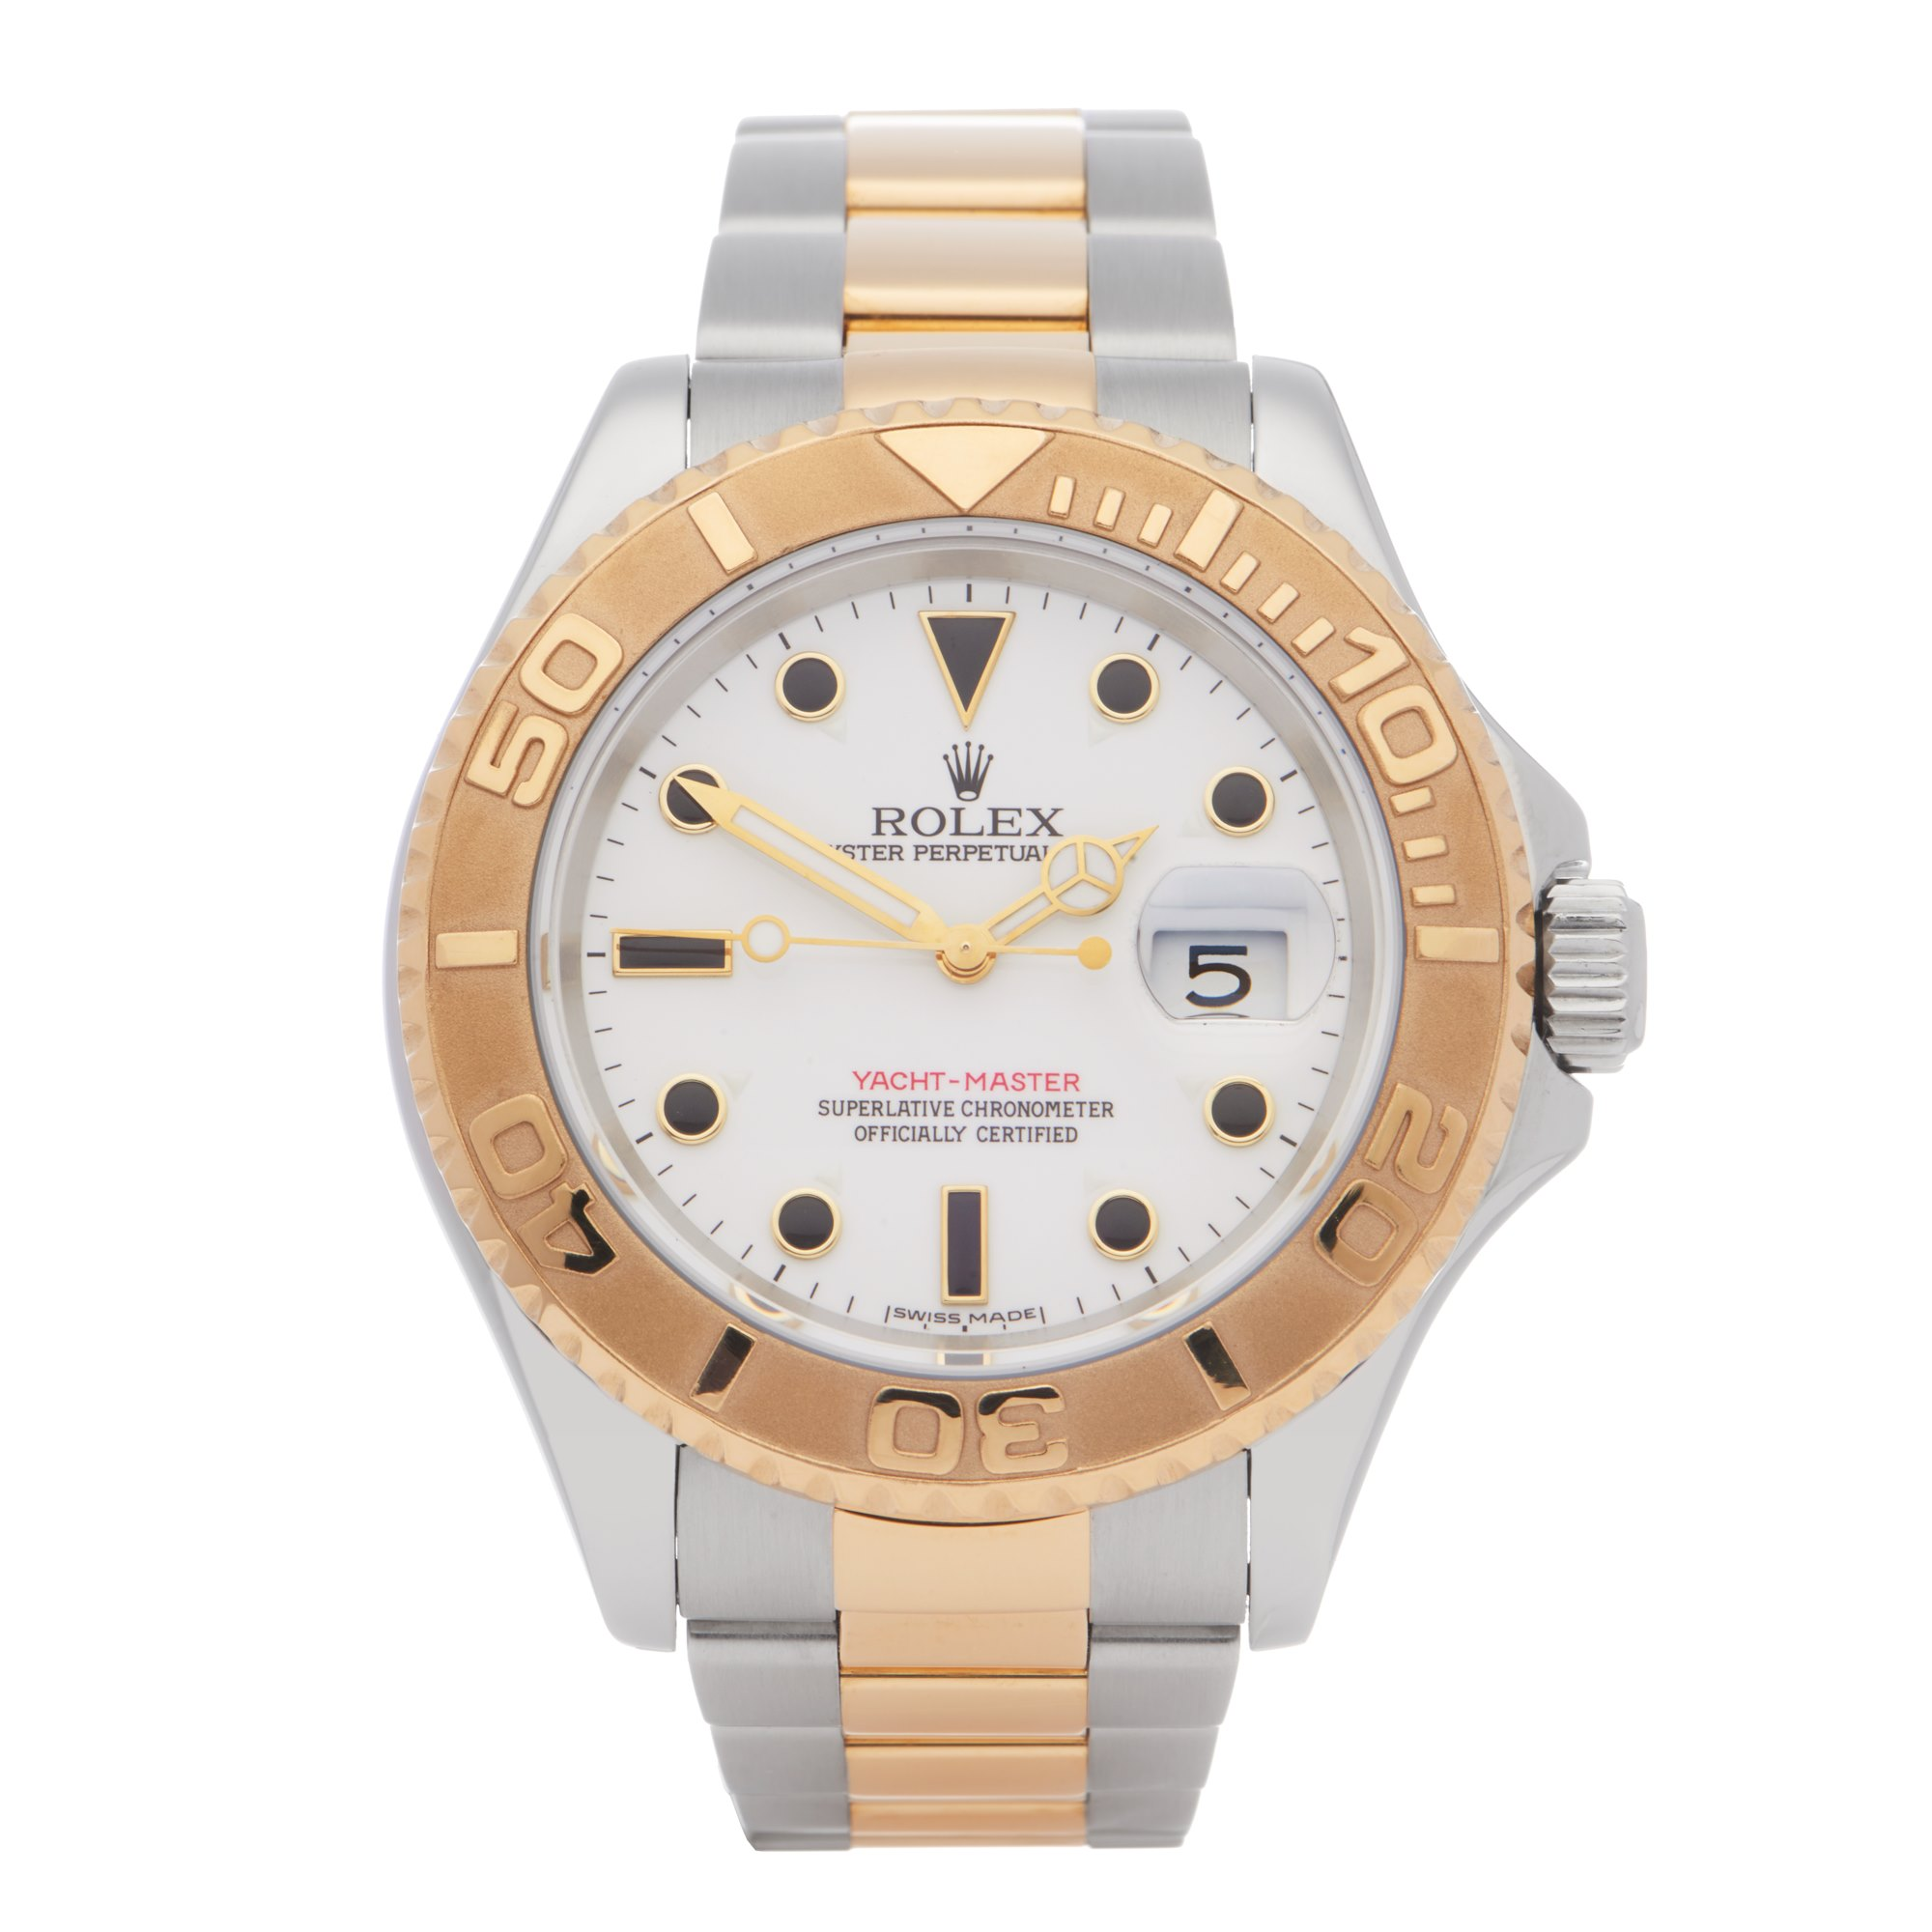 Rolex Yacht-Master 18K Yellow Gold & Stainless Steel 16623